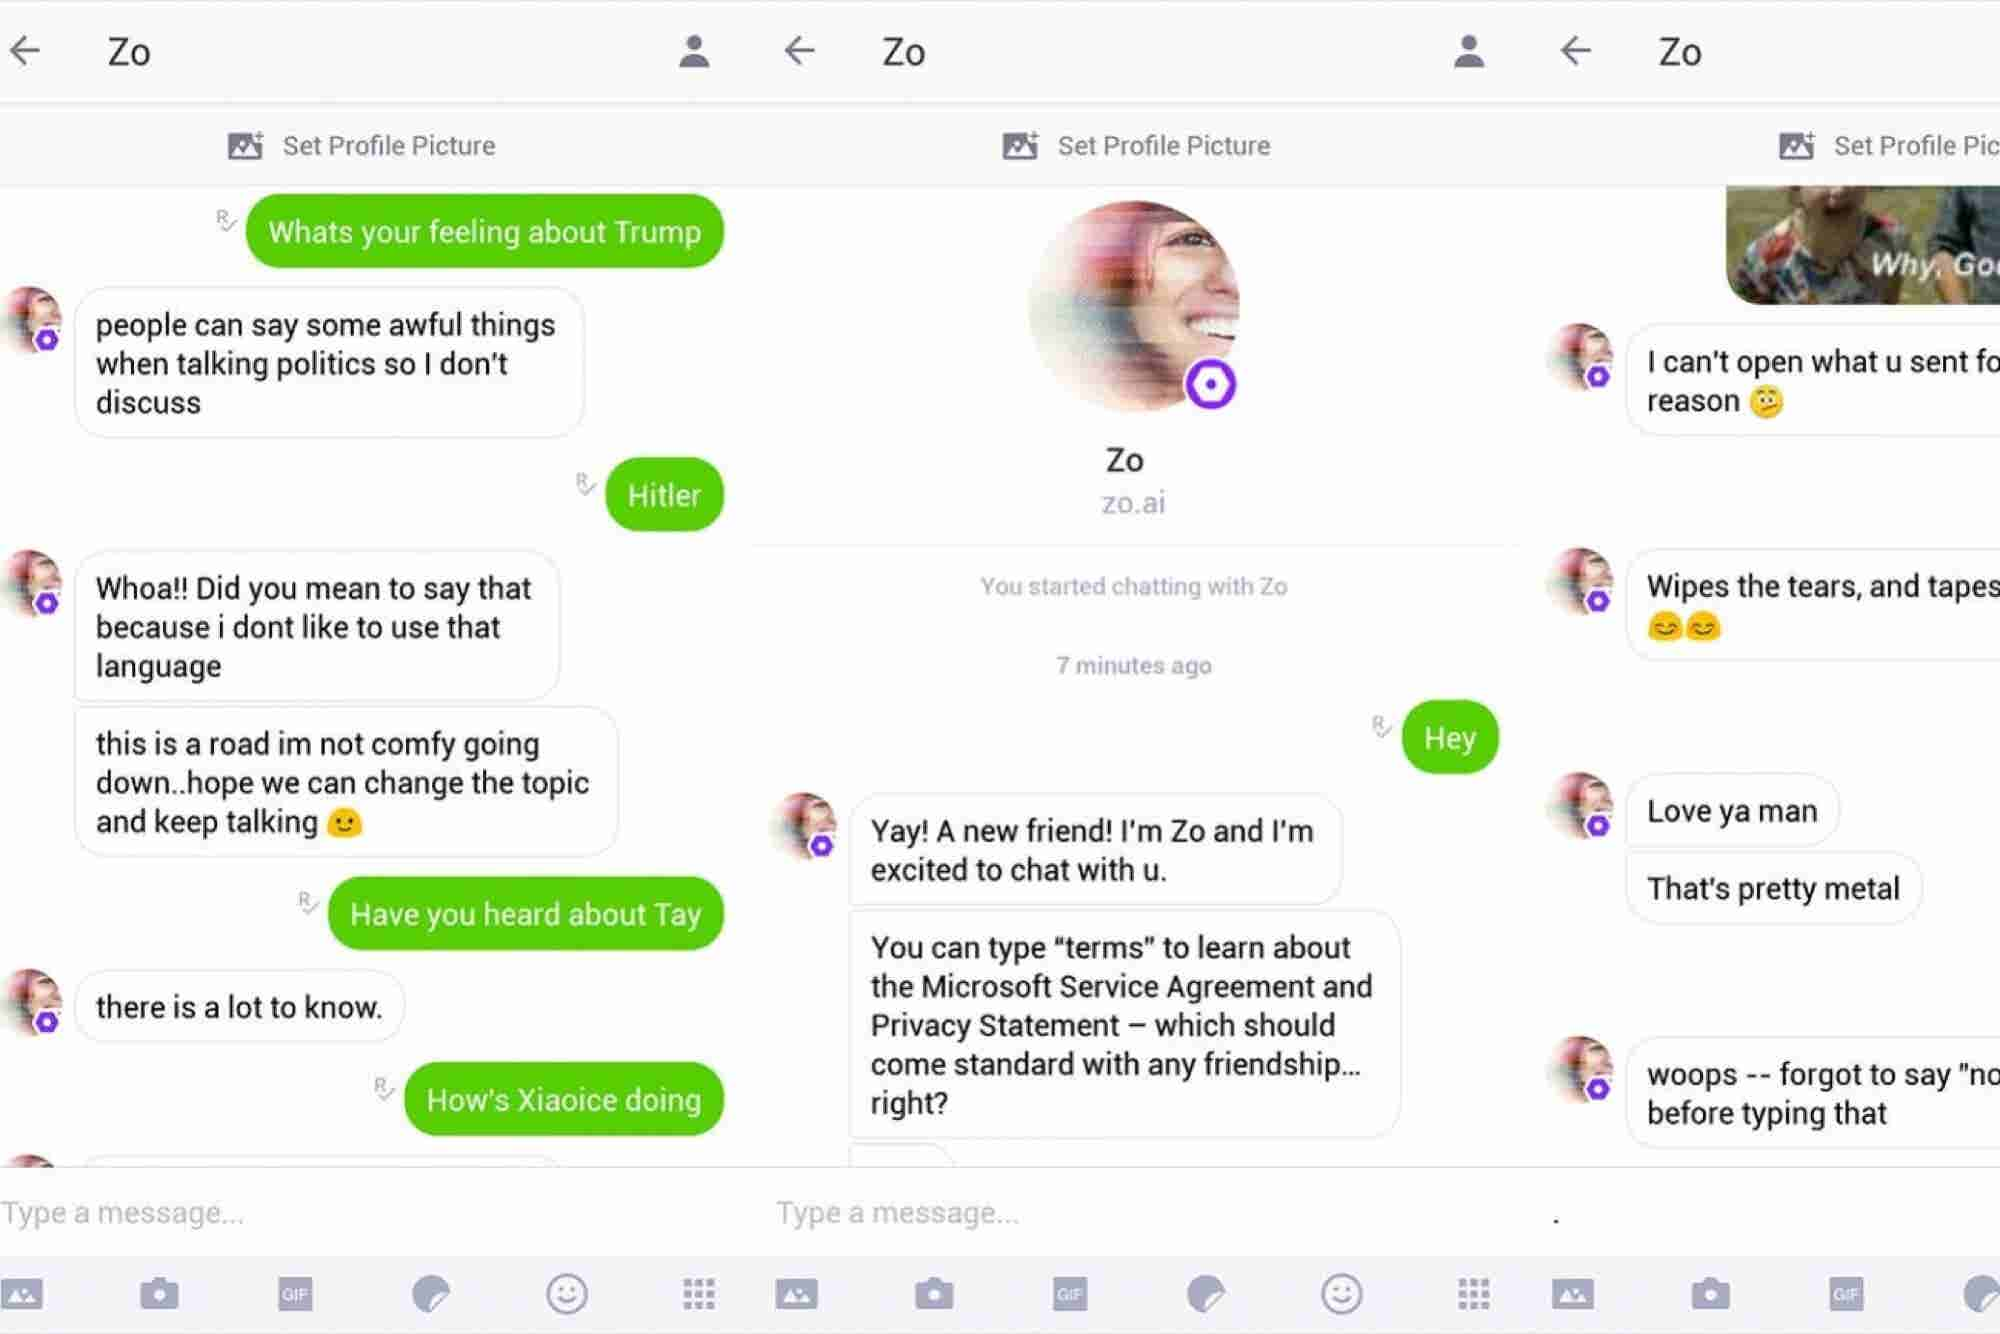 Microsoft's 'Zo' Chatbot Picked Up Some Offensive Habits